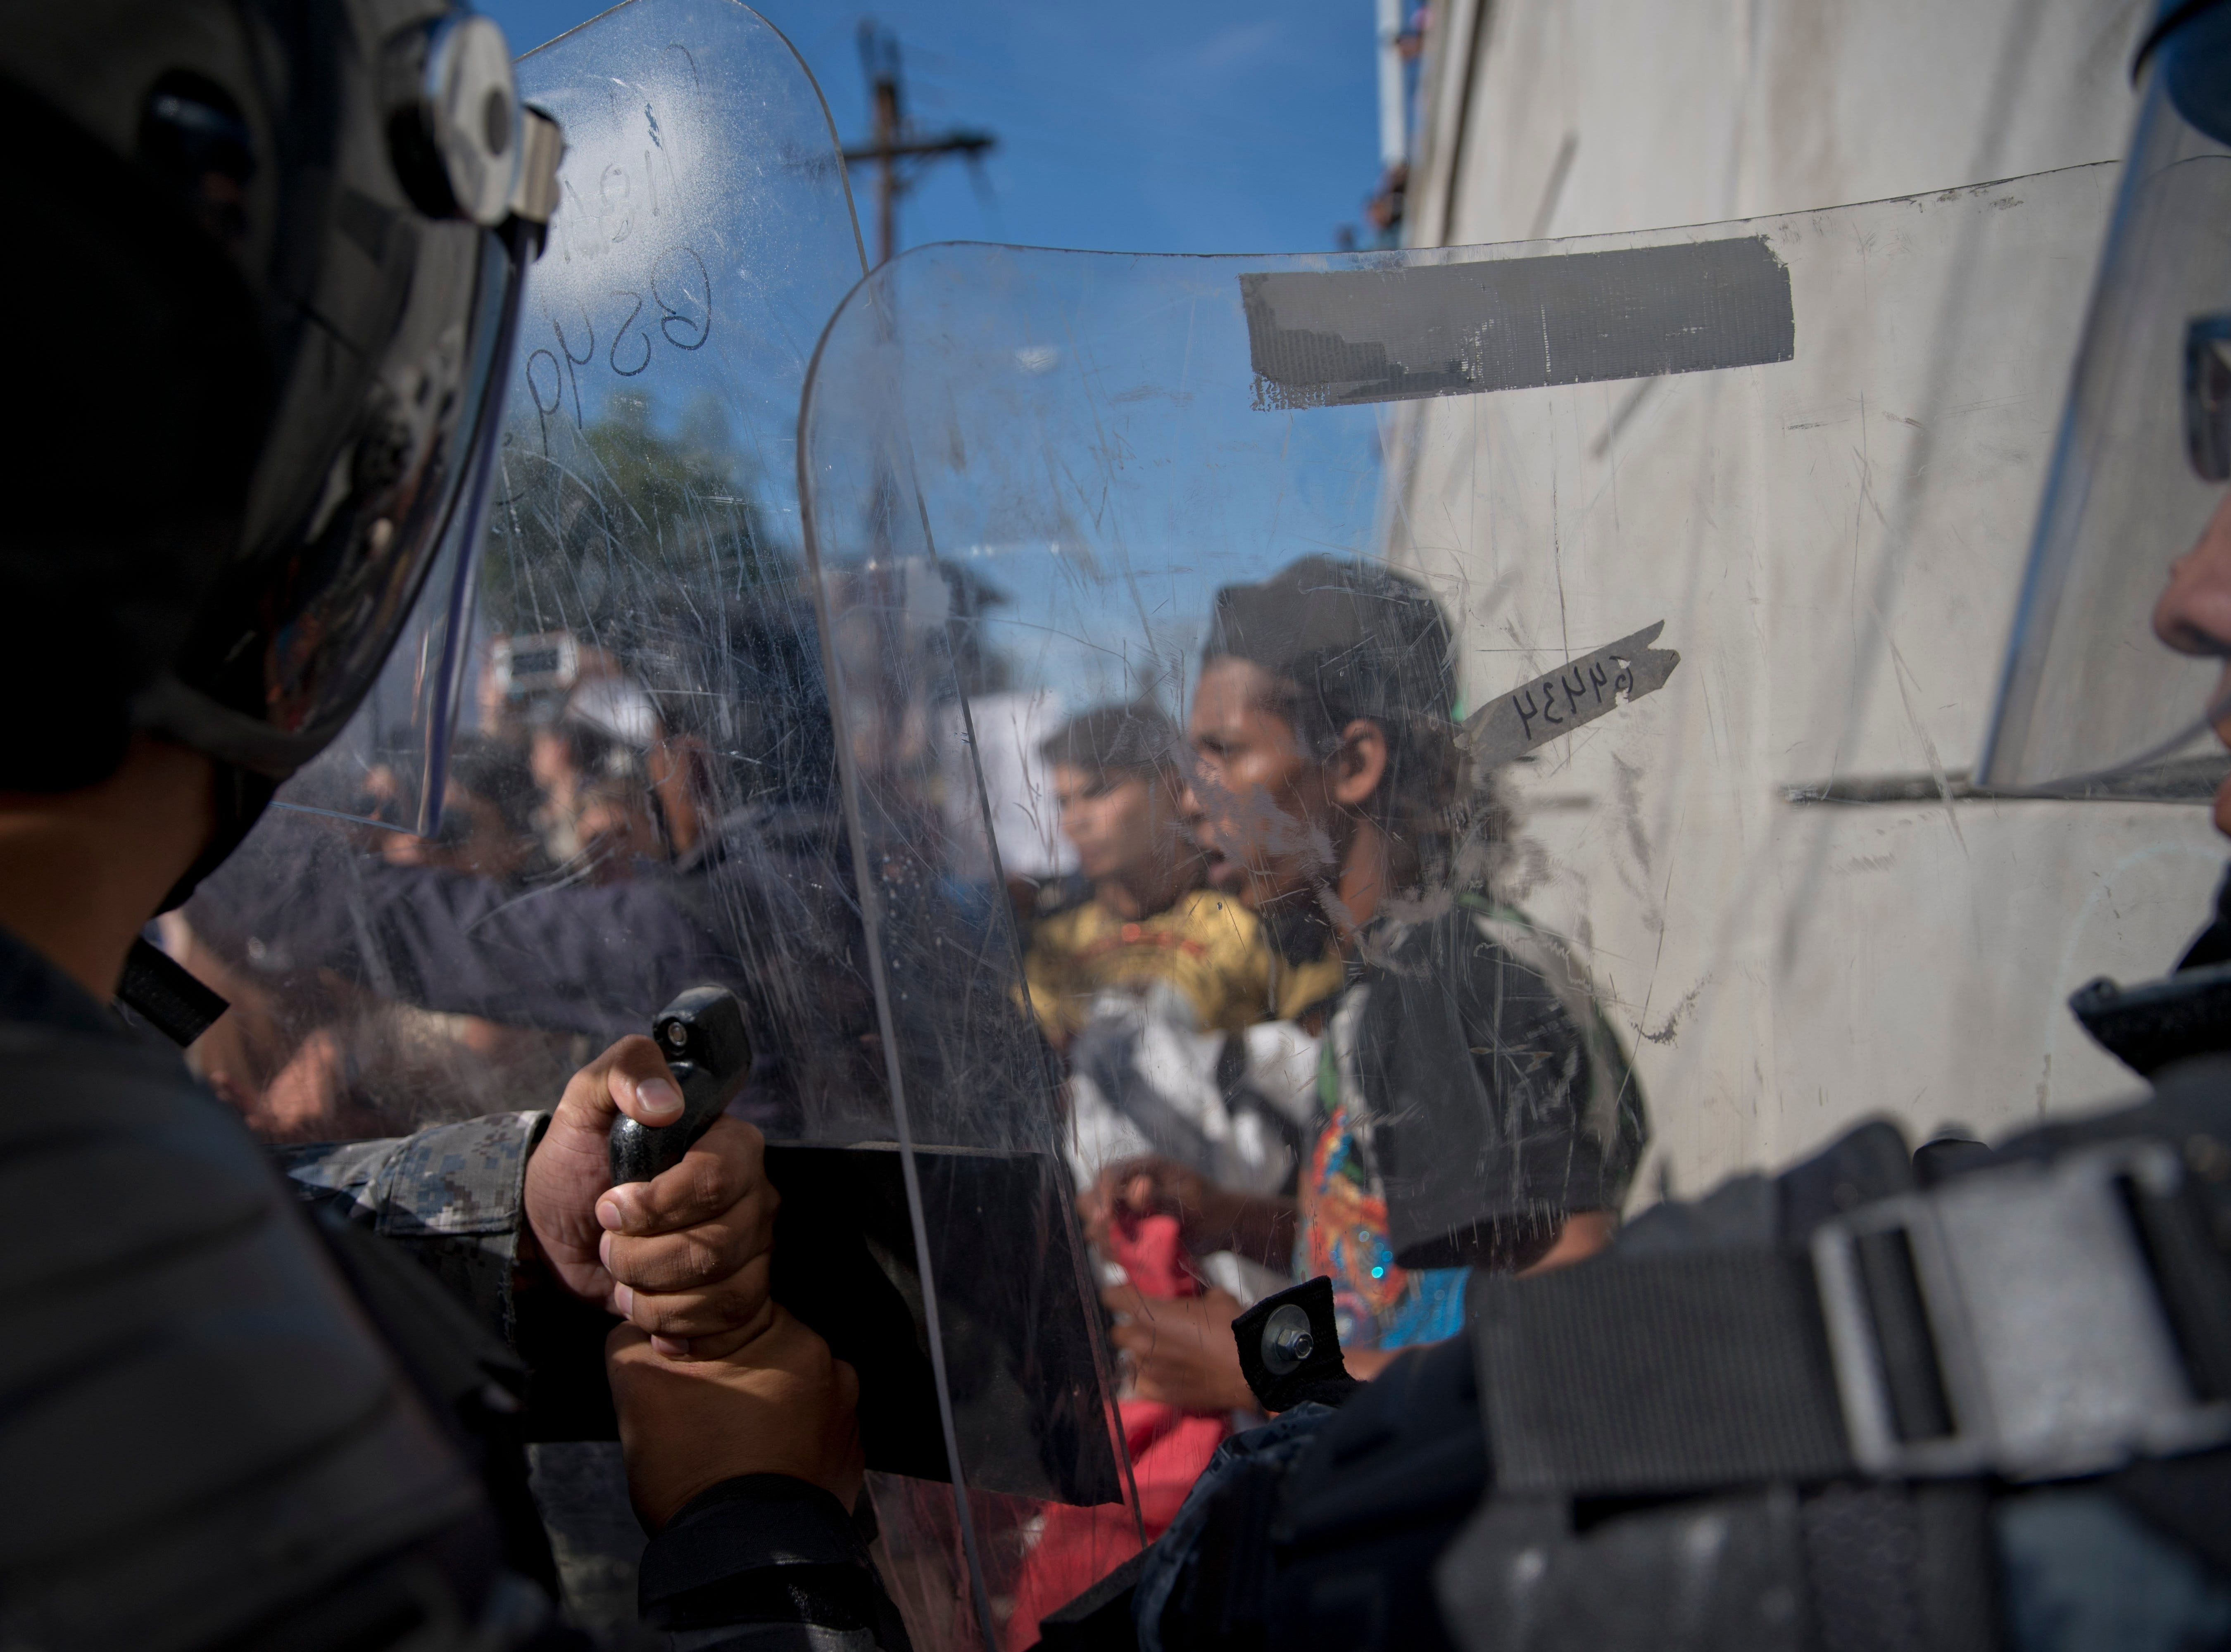 Mexican police try to keep migrants from advancing toward the Chaparral border crossing in Tijuana, Mexico, Nov. 25, 2018, near the San Ysidro entry point into the U.S.